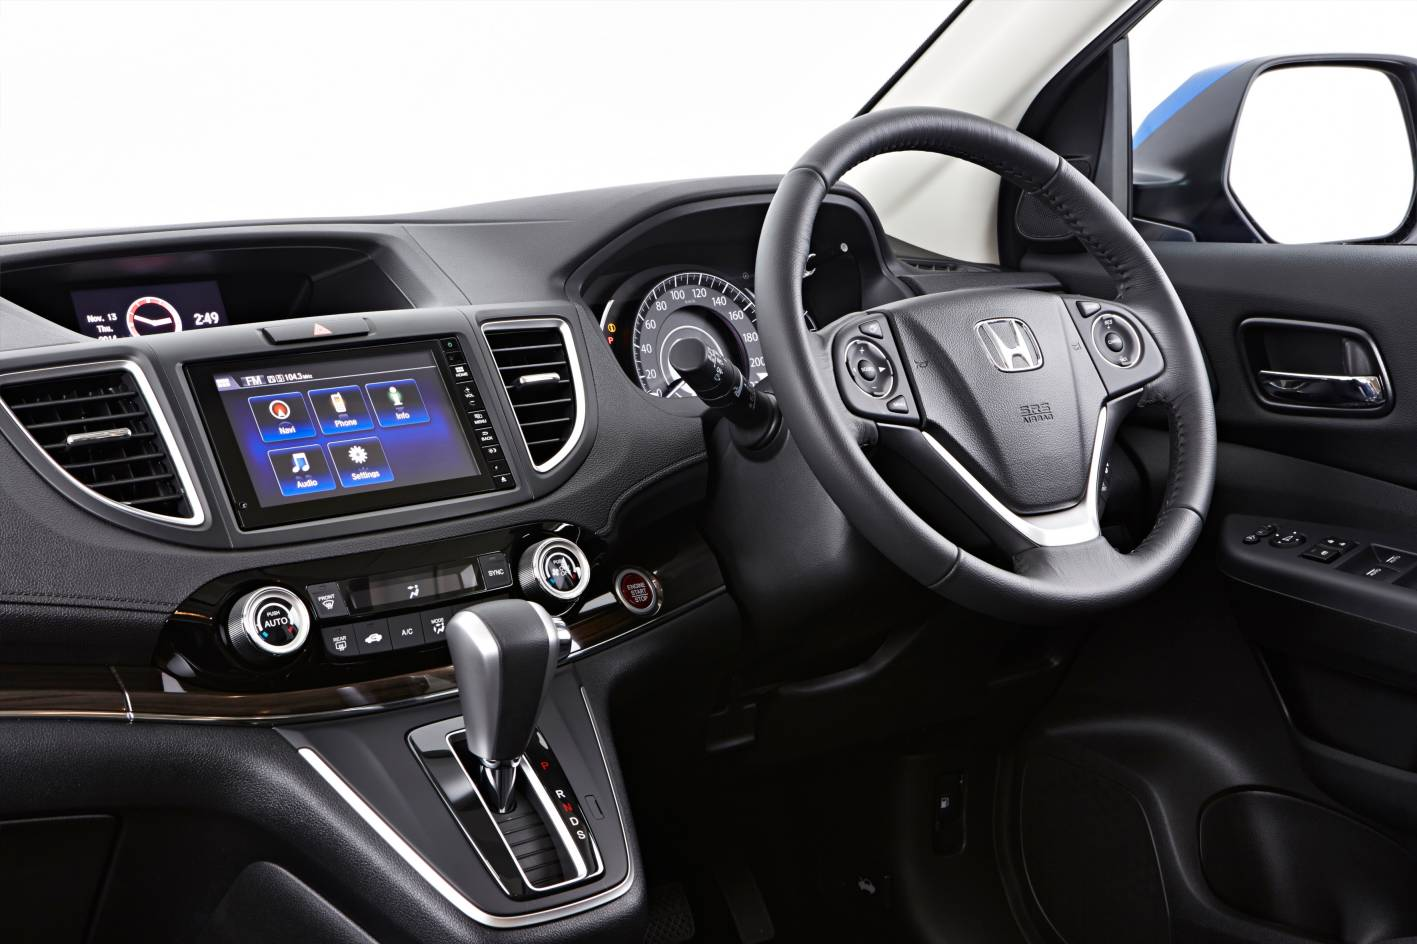 Honda crv lx 2015 interior autos post for Interior honda crv